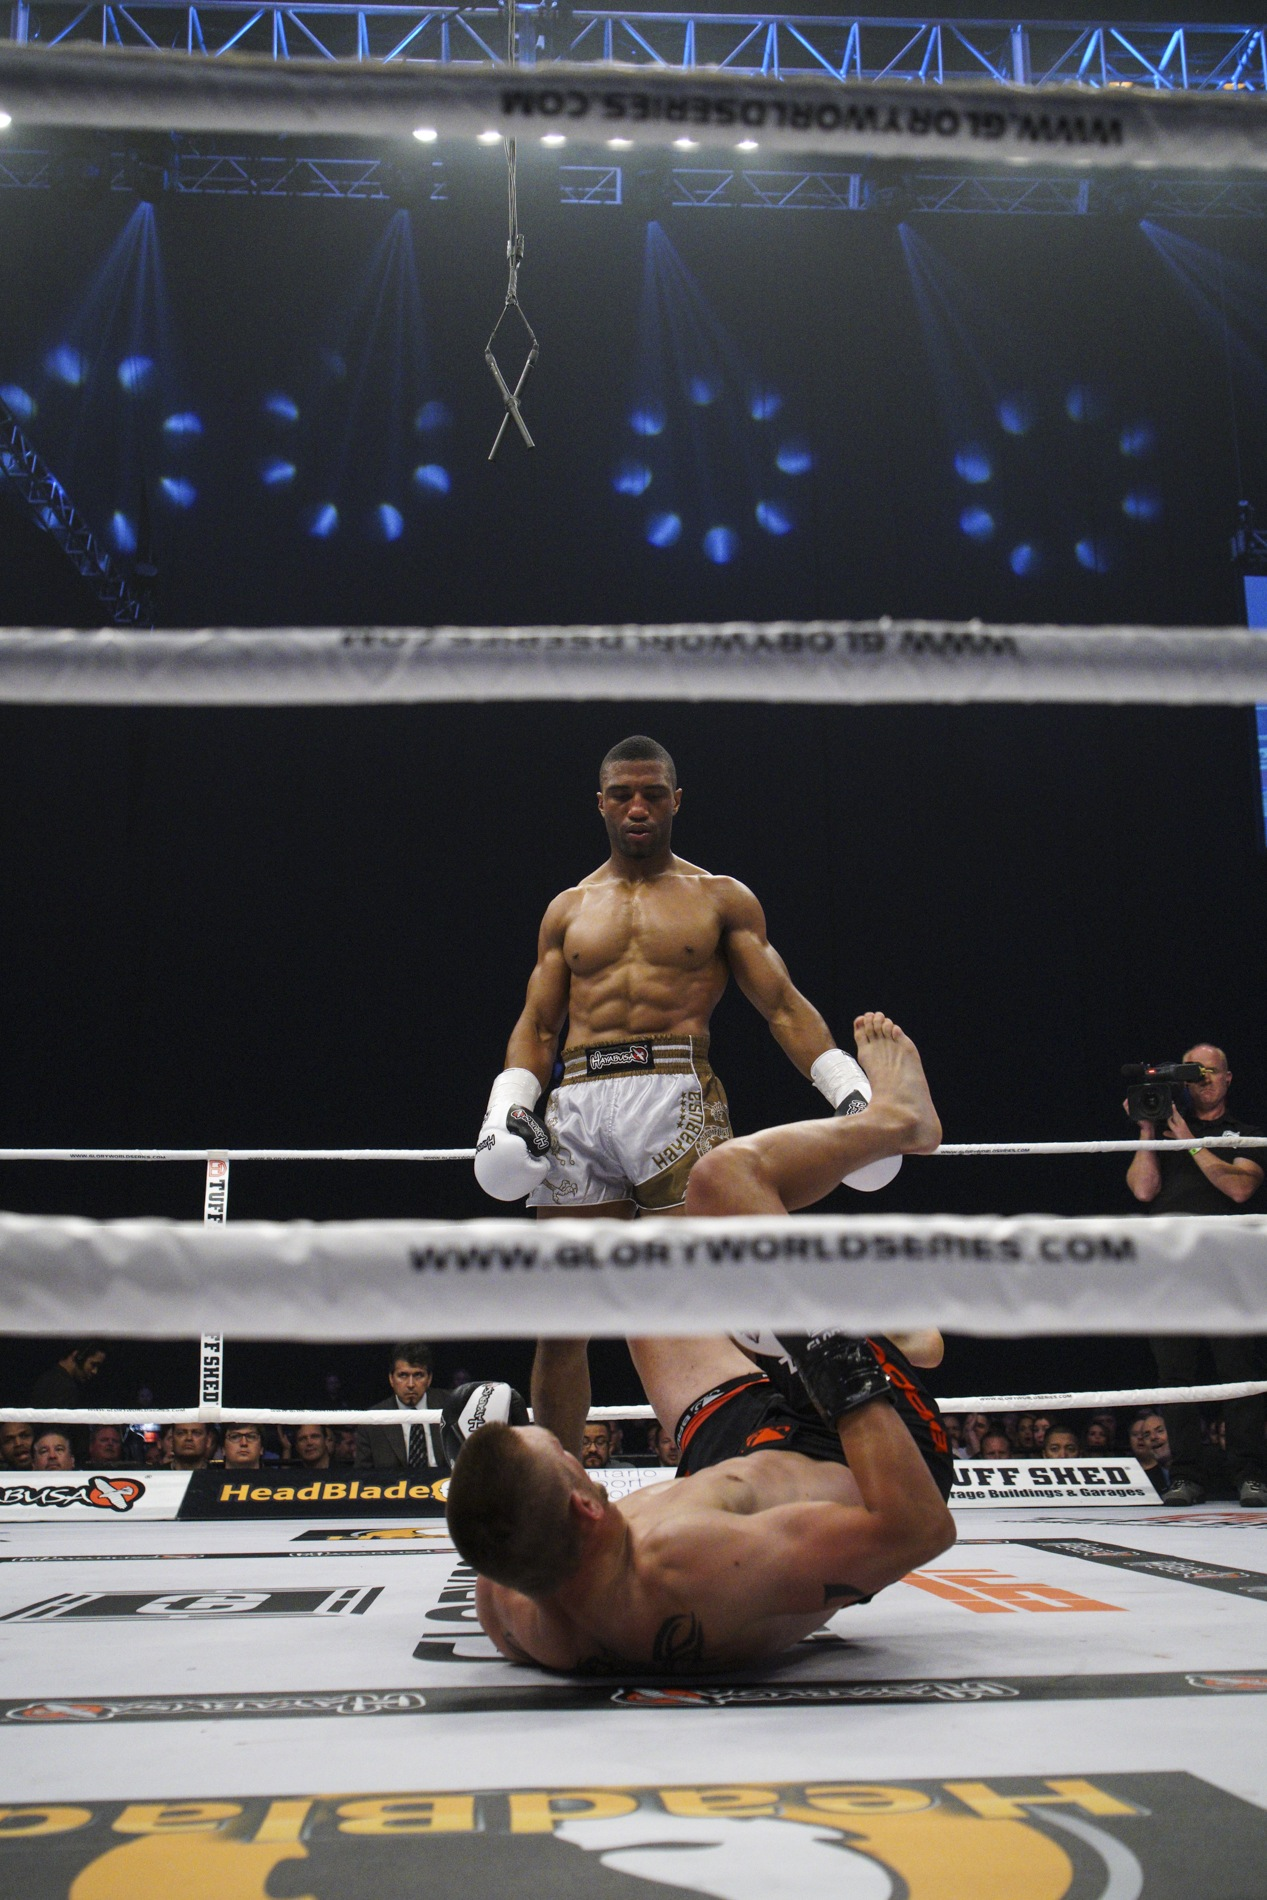 Simon Marcus admires his handiwork after sweeping Dustin Jacoby. GLORY 30 Los Angeles.